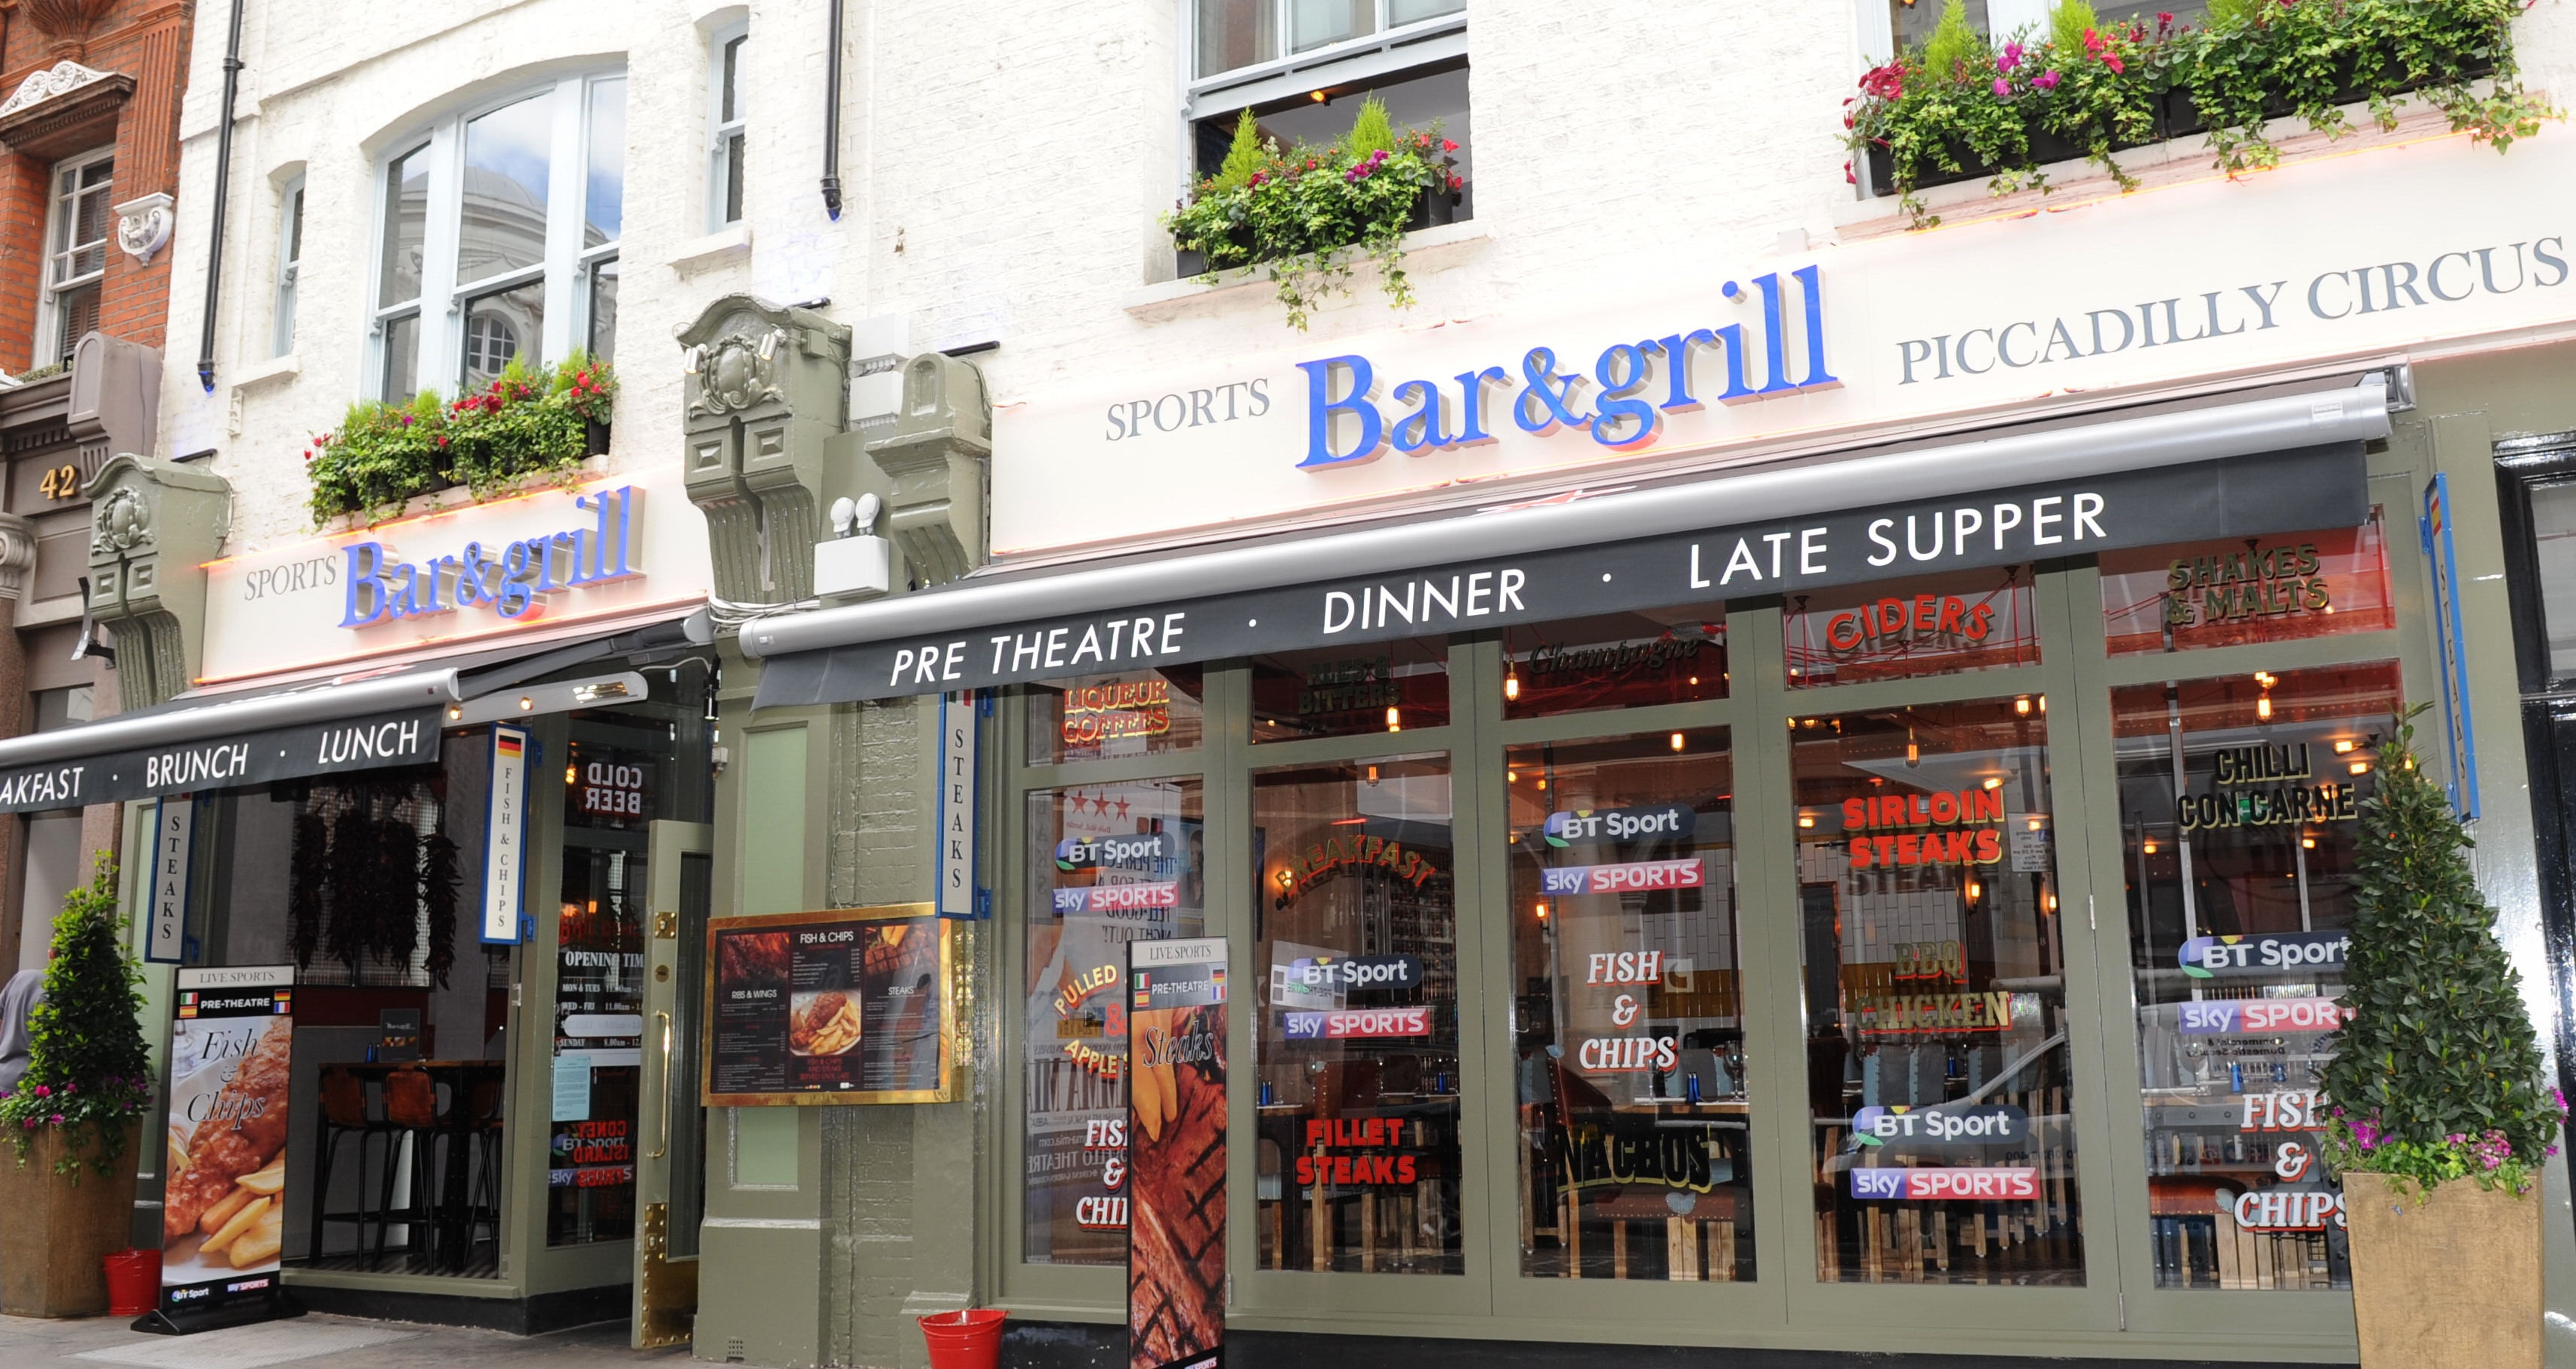 Sports Bar & Grill - Piccadilly Circus - London